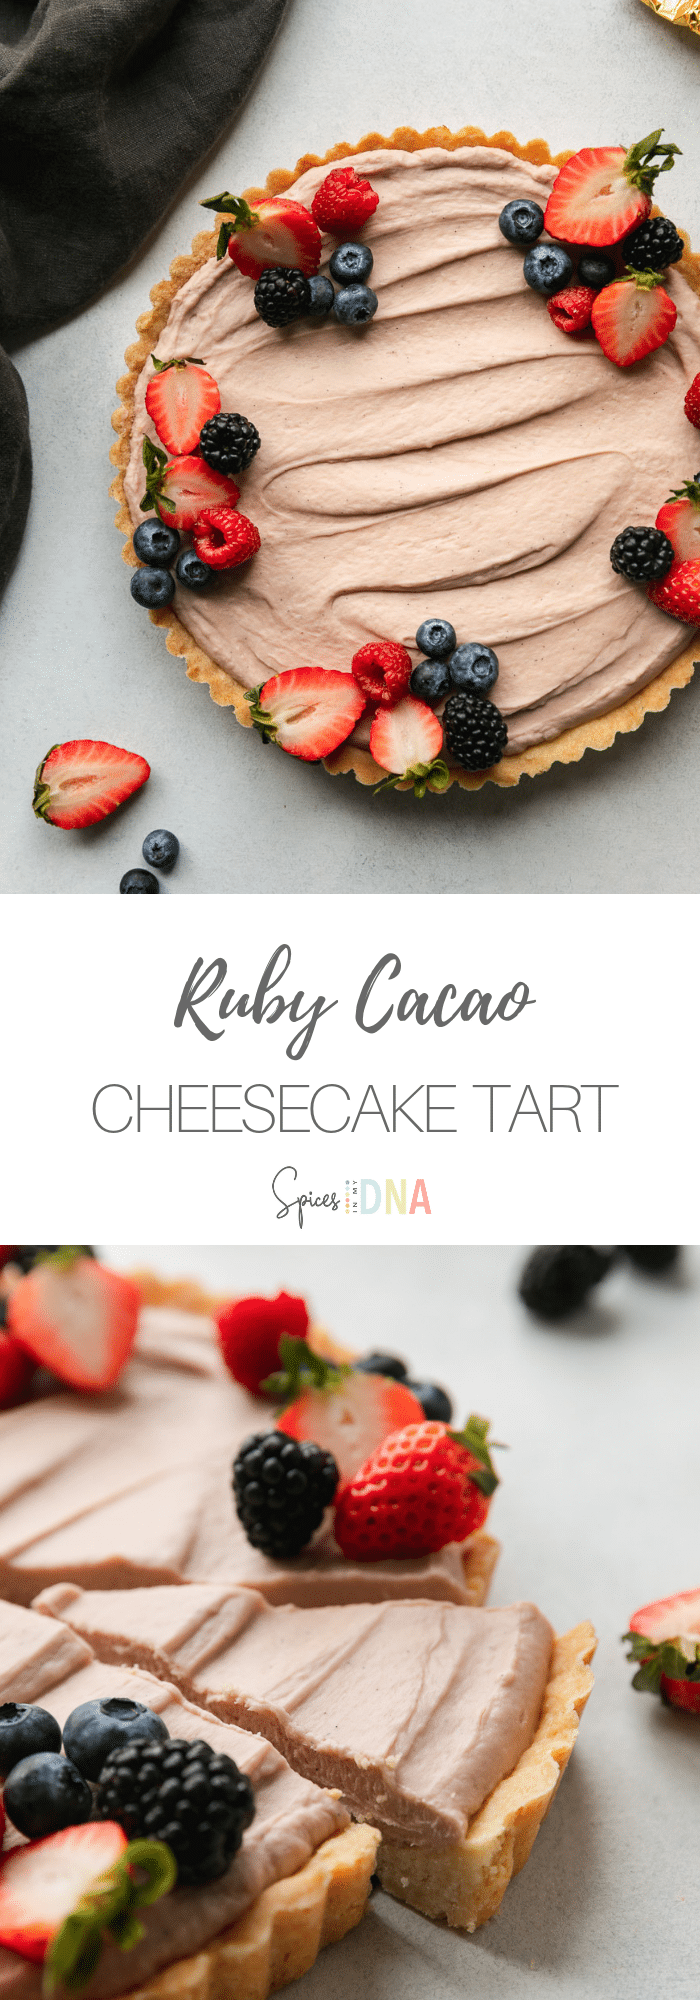 This Ruby Cacao Cheesecake Tart with Berries is a super delicious cheesecake tart hybrid - perfect for a Valentine's Day dessert! It's just the right amount of sweet, has a little bit of richness from the cream cheese, and a crust reminiscent of half sugar cookie and half pie crust! #cheesecake #tart #chocolate #valentinesdaydessert #dessert #whitechocolate